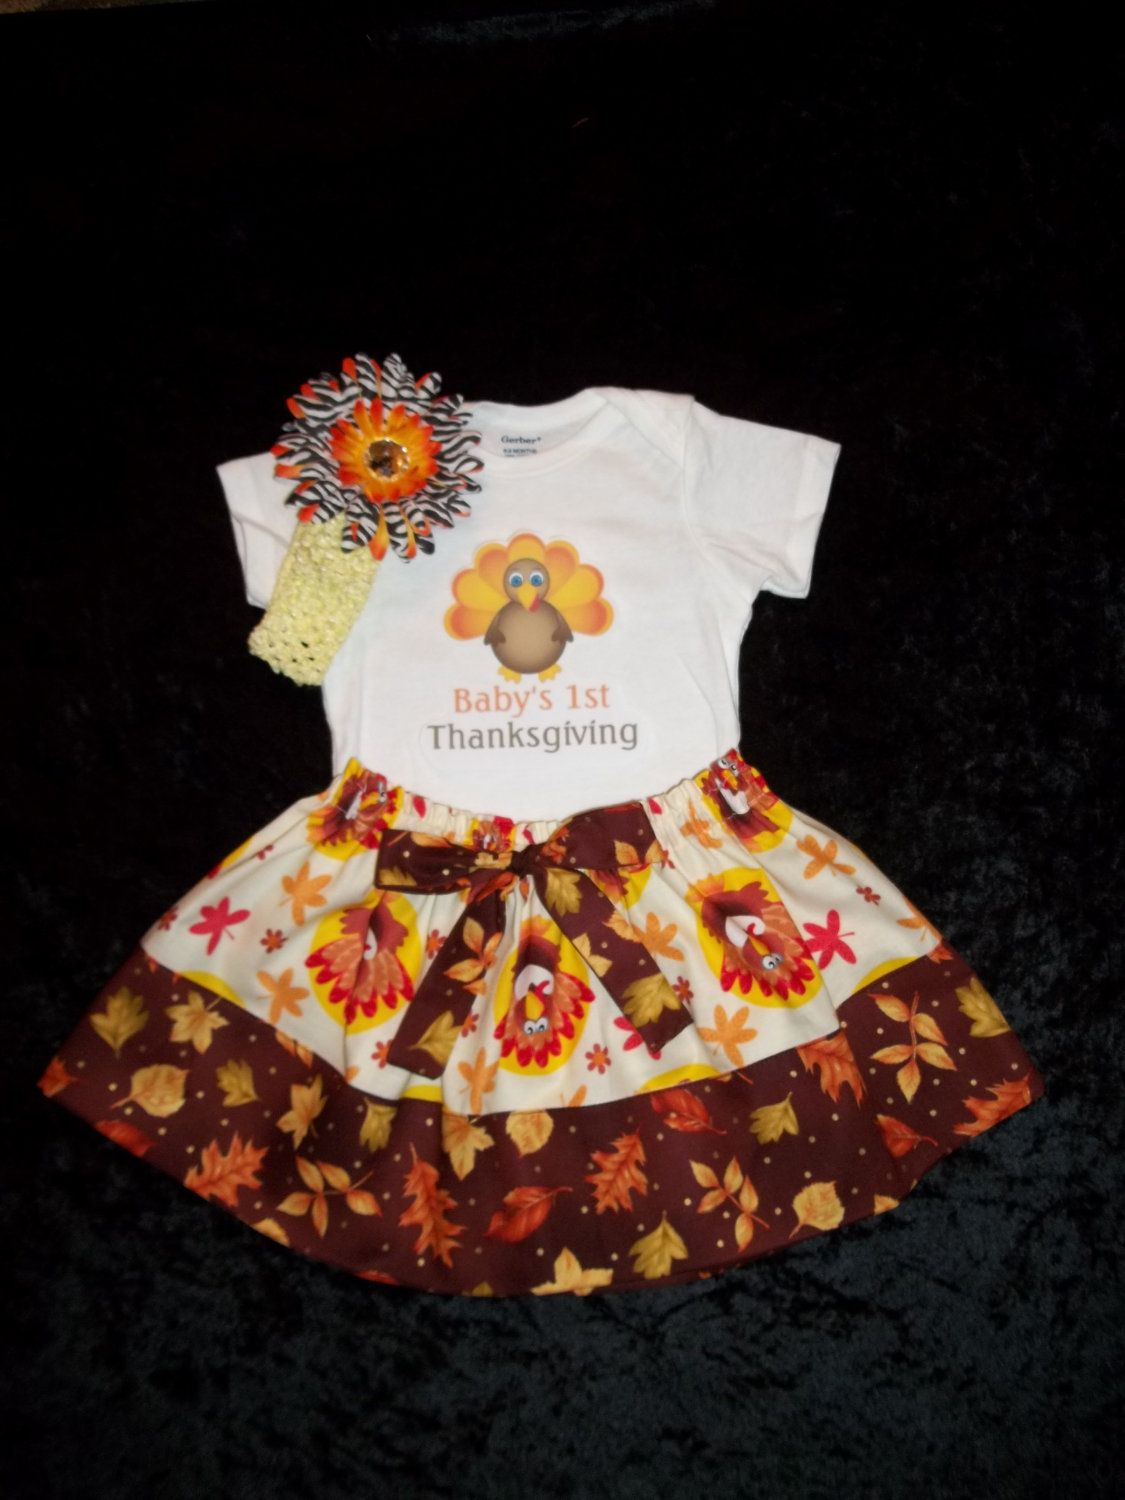 Yellow dress 3-6 months  personalized st thanksgiving onesie baby skirt outfit turkey day